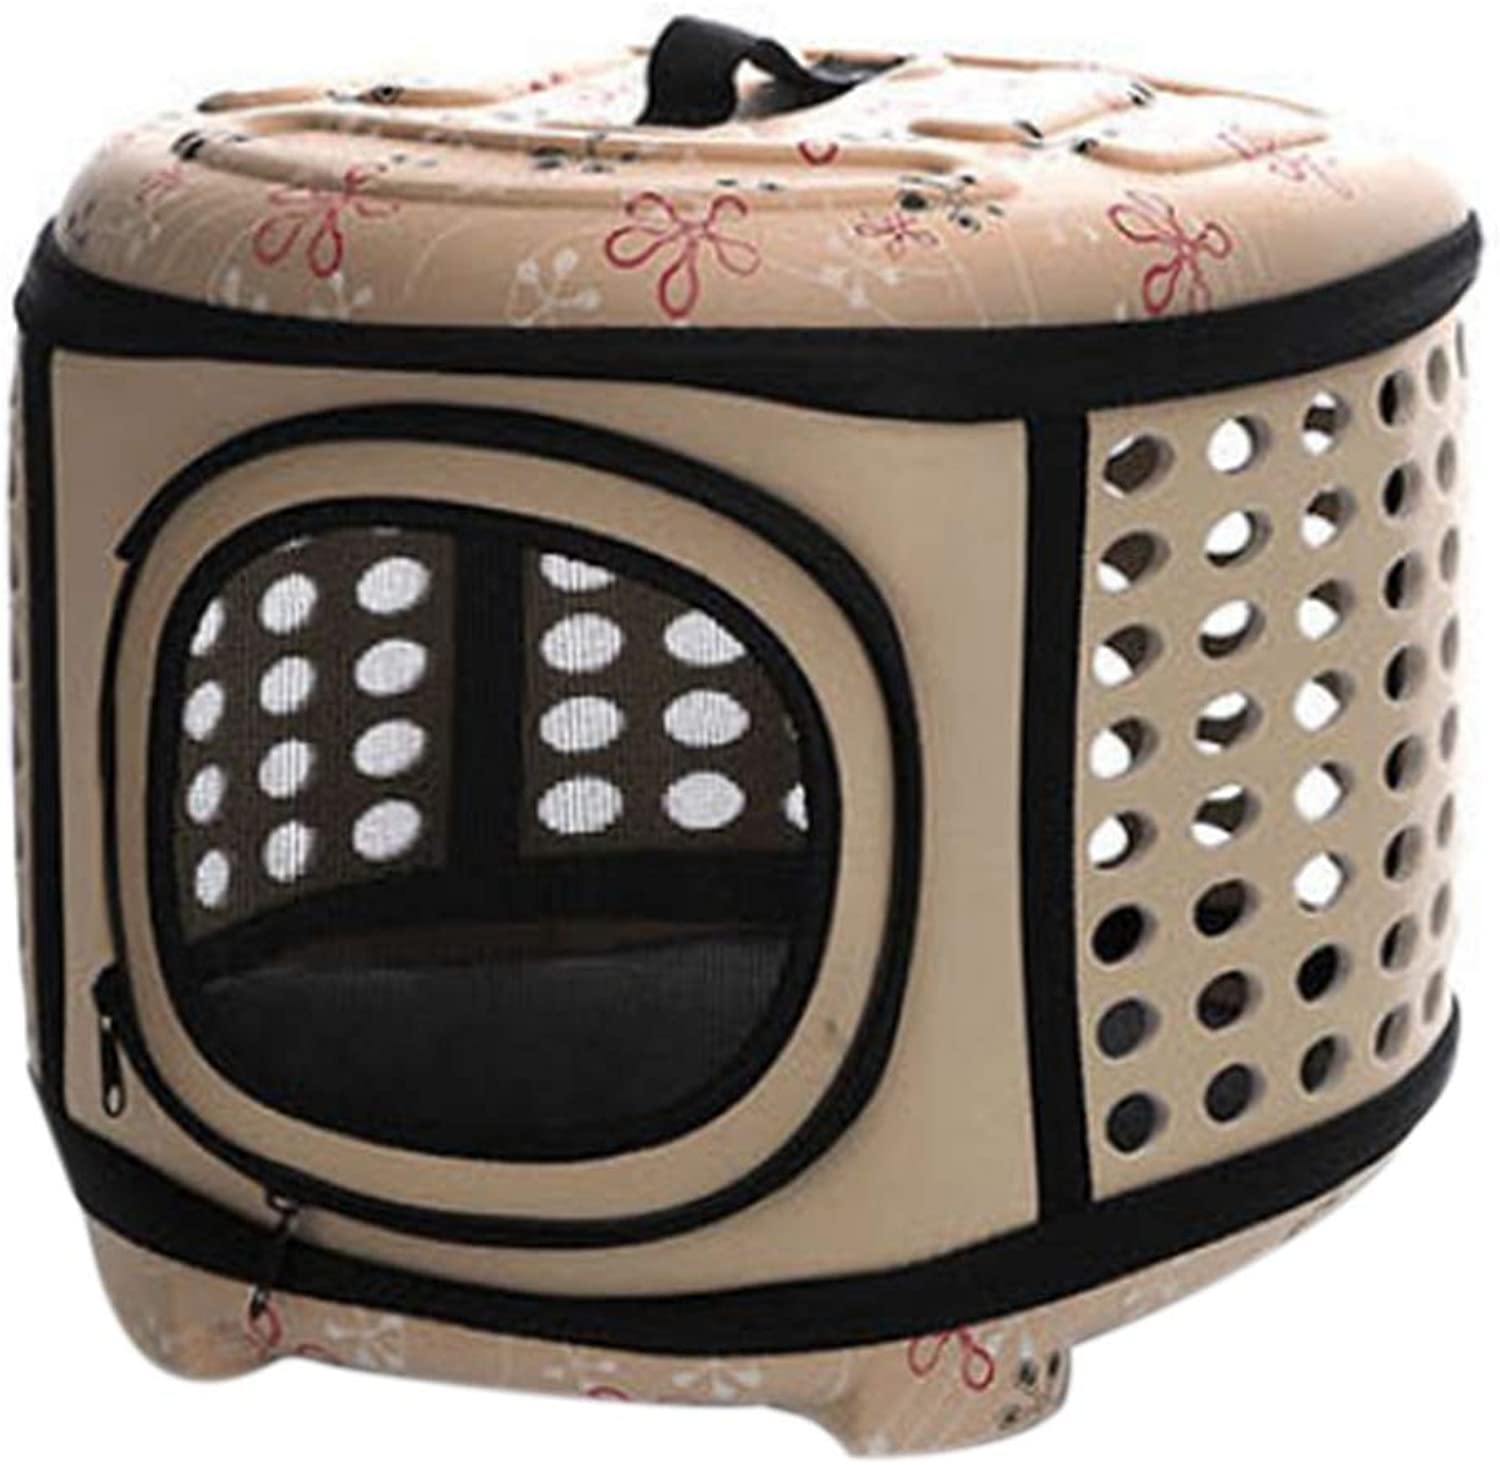 08d199e8b682 PUAO Collapsible Hard Cover Sturdy Pet Travel Carrier, Portable Lightweight  Pet Kennel EVA Travel Bags Transporter Airline Approved Animal Crate Cage  ...